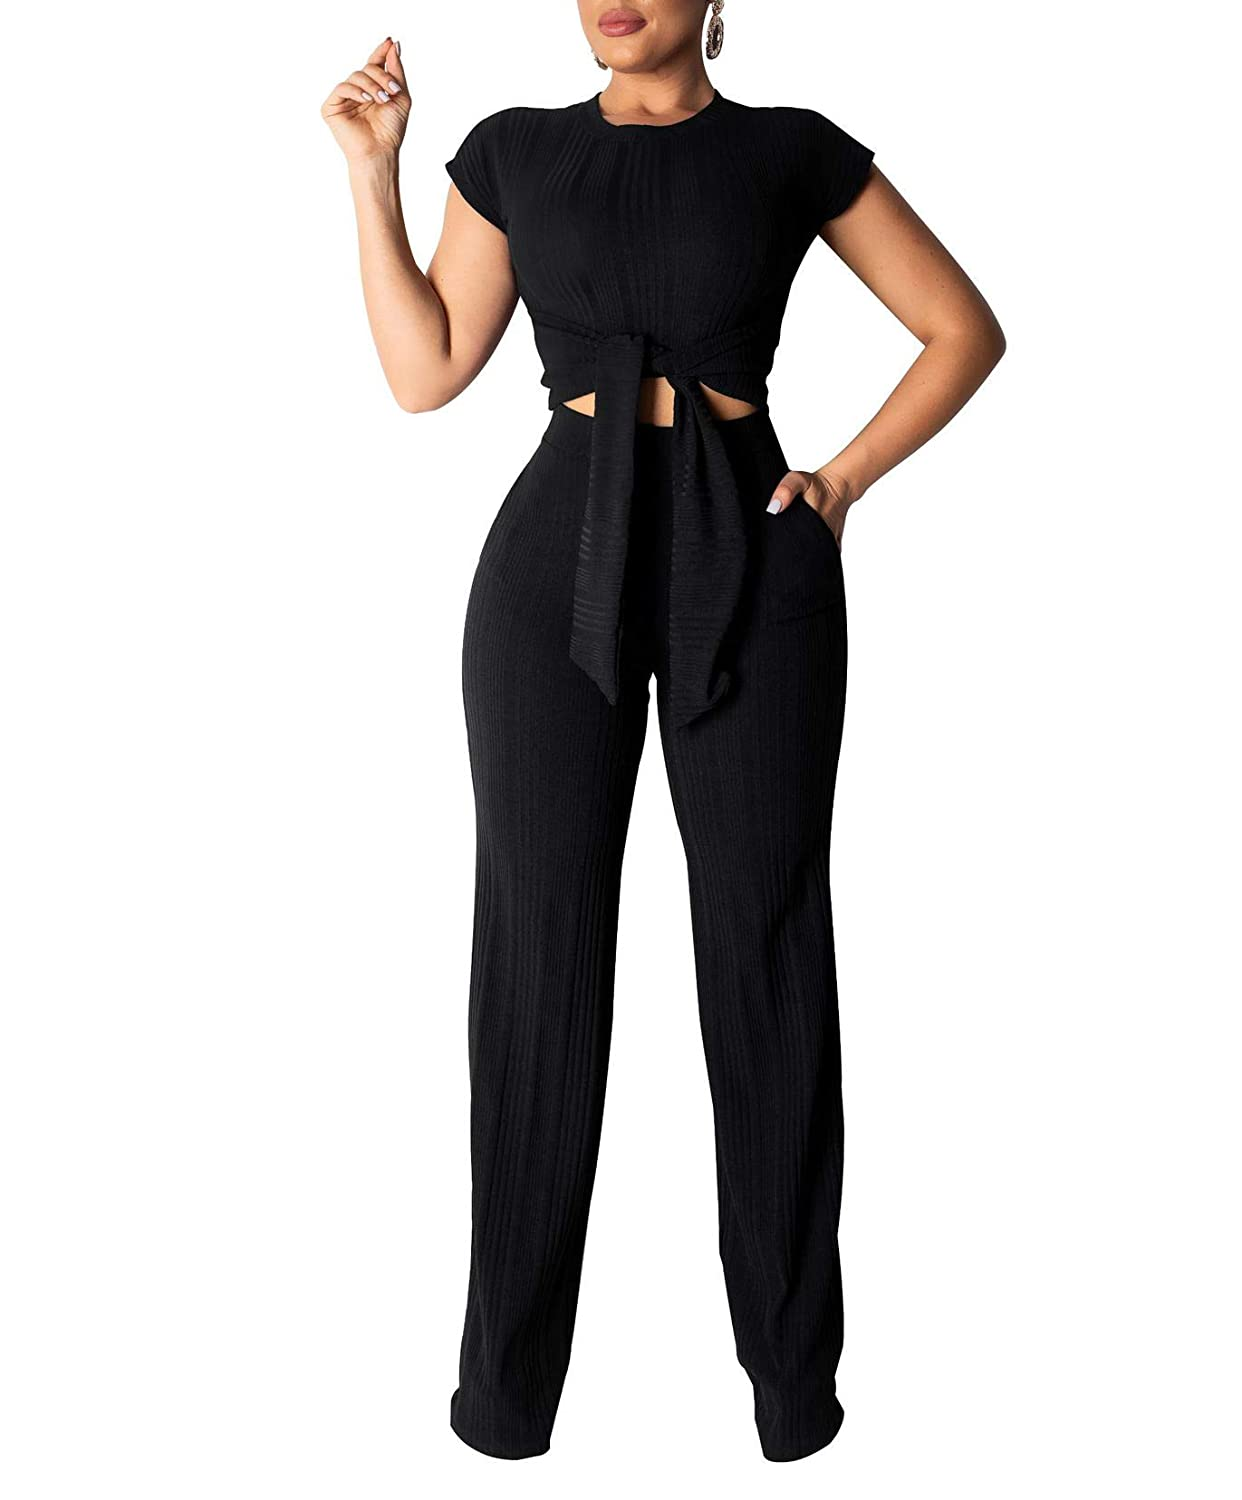 Black Remelon Womens Short Sleeve Ribbed Tie Up Crop Top Pockets Loose Long Pants Set 2 Piece Outfits Jumpsuits